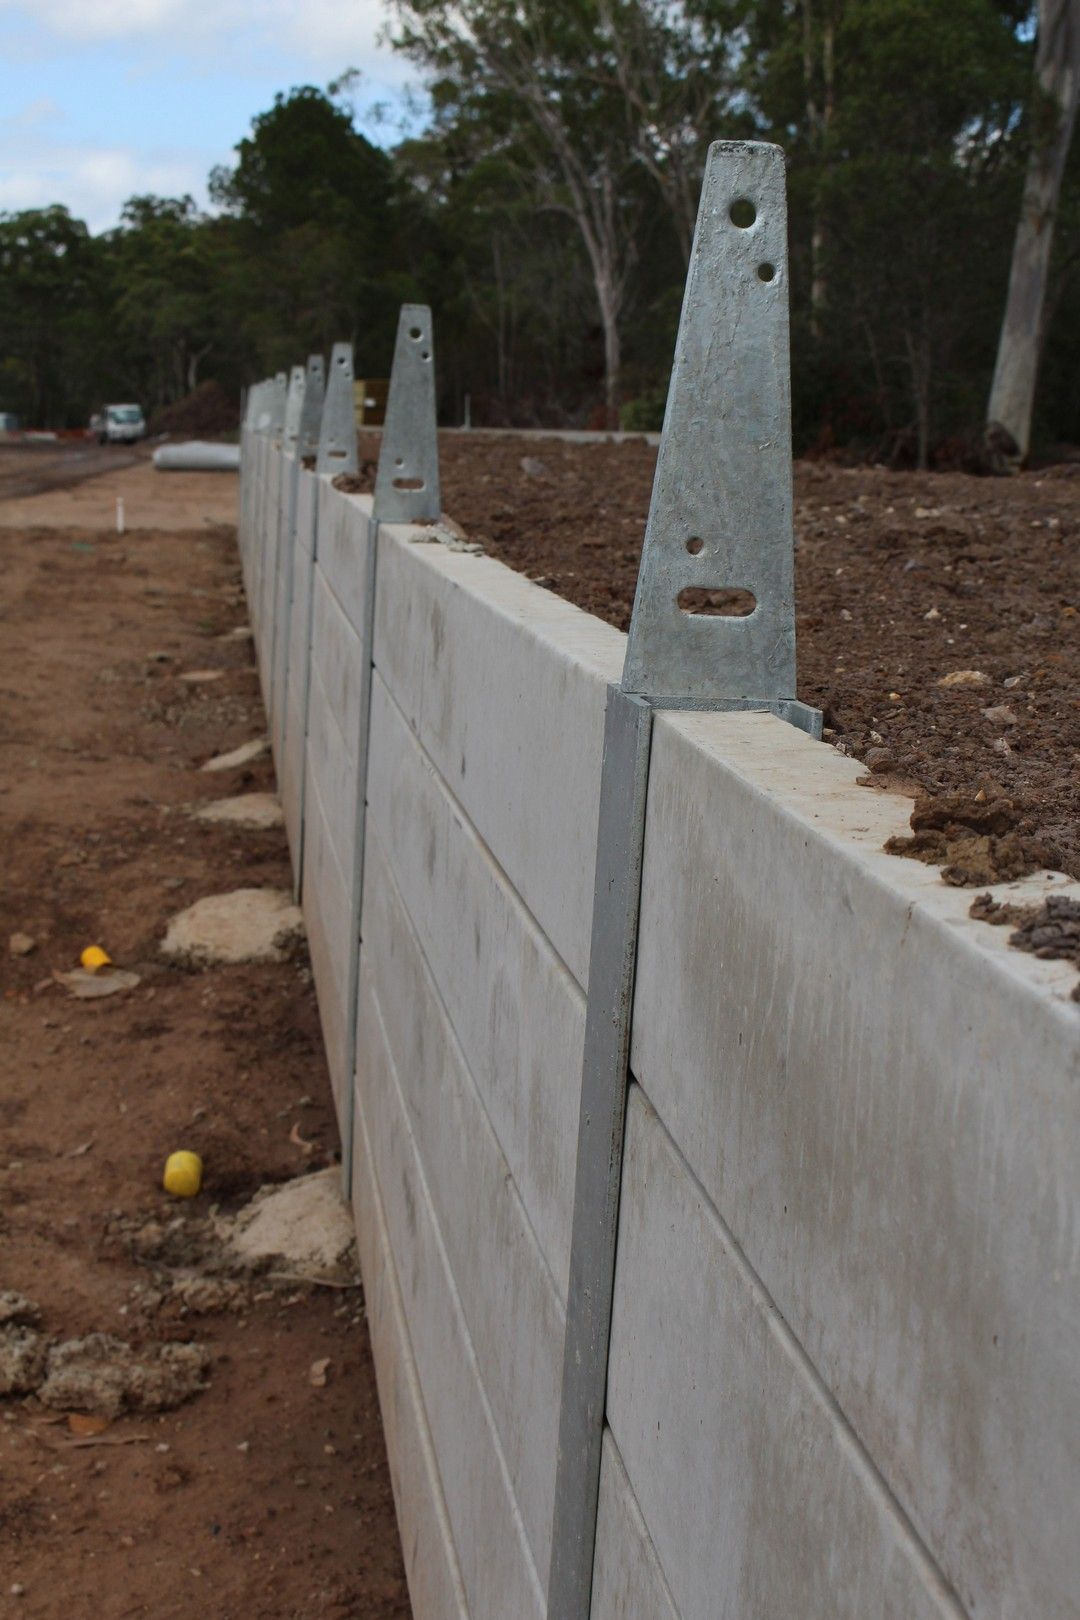 Diy Cinder Block Retaining Walls With Rebar And Concrete In 2020 Concrete Fence Posts Wood Fence Wood Fence Post